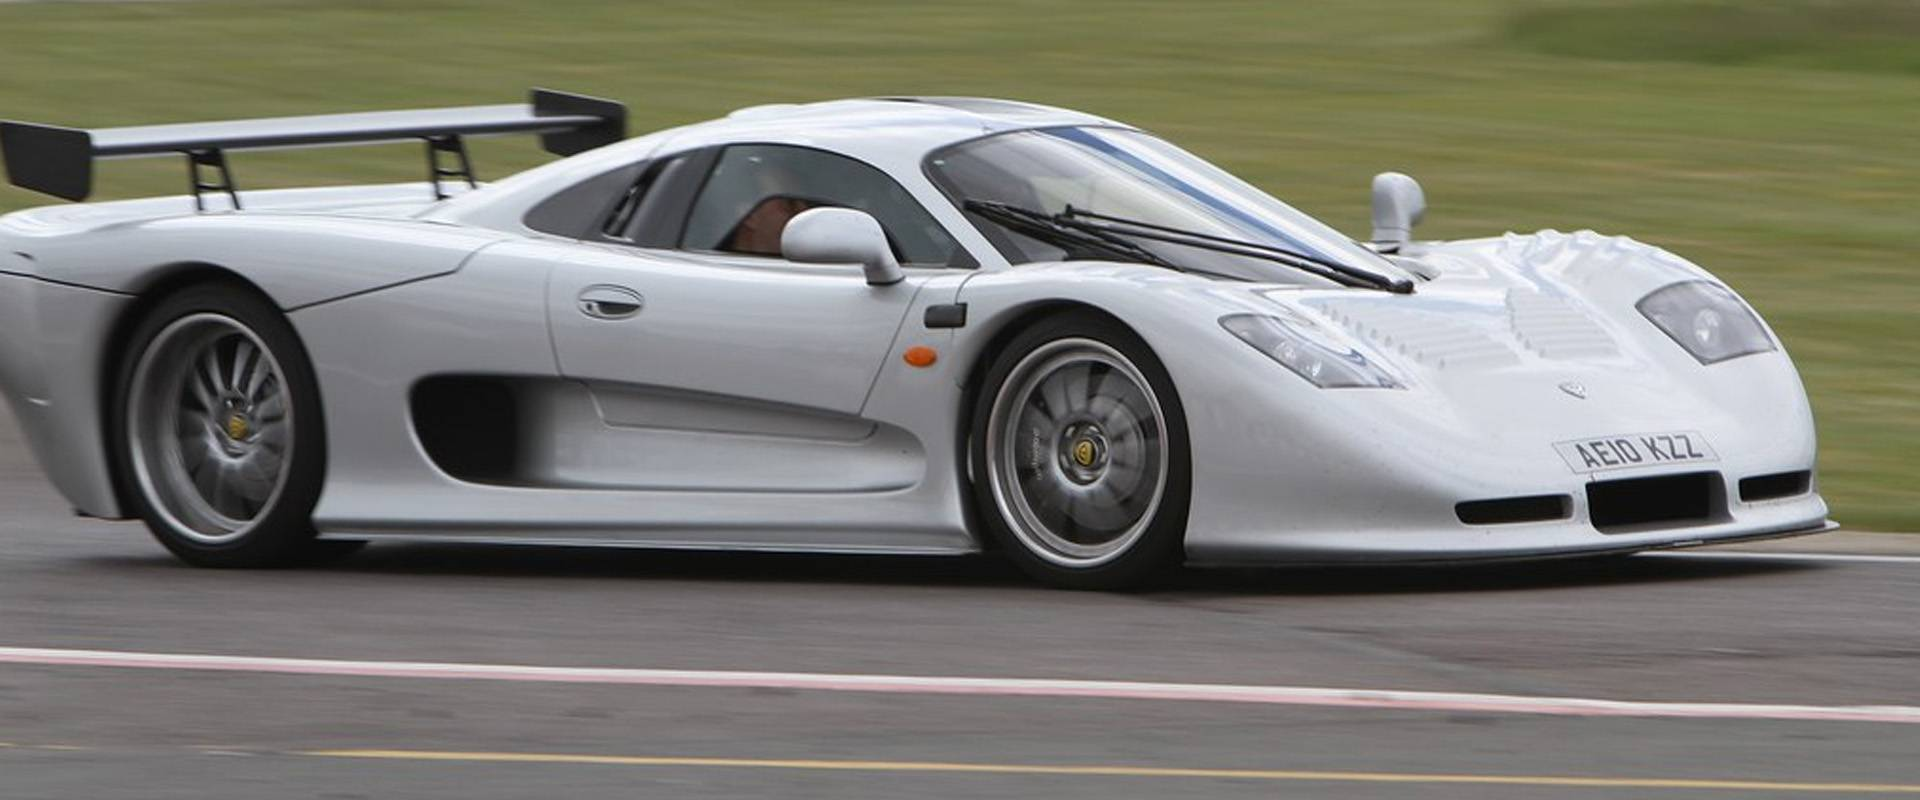 The Mosler MT 900S - Raw but Rewarding